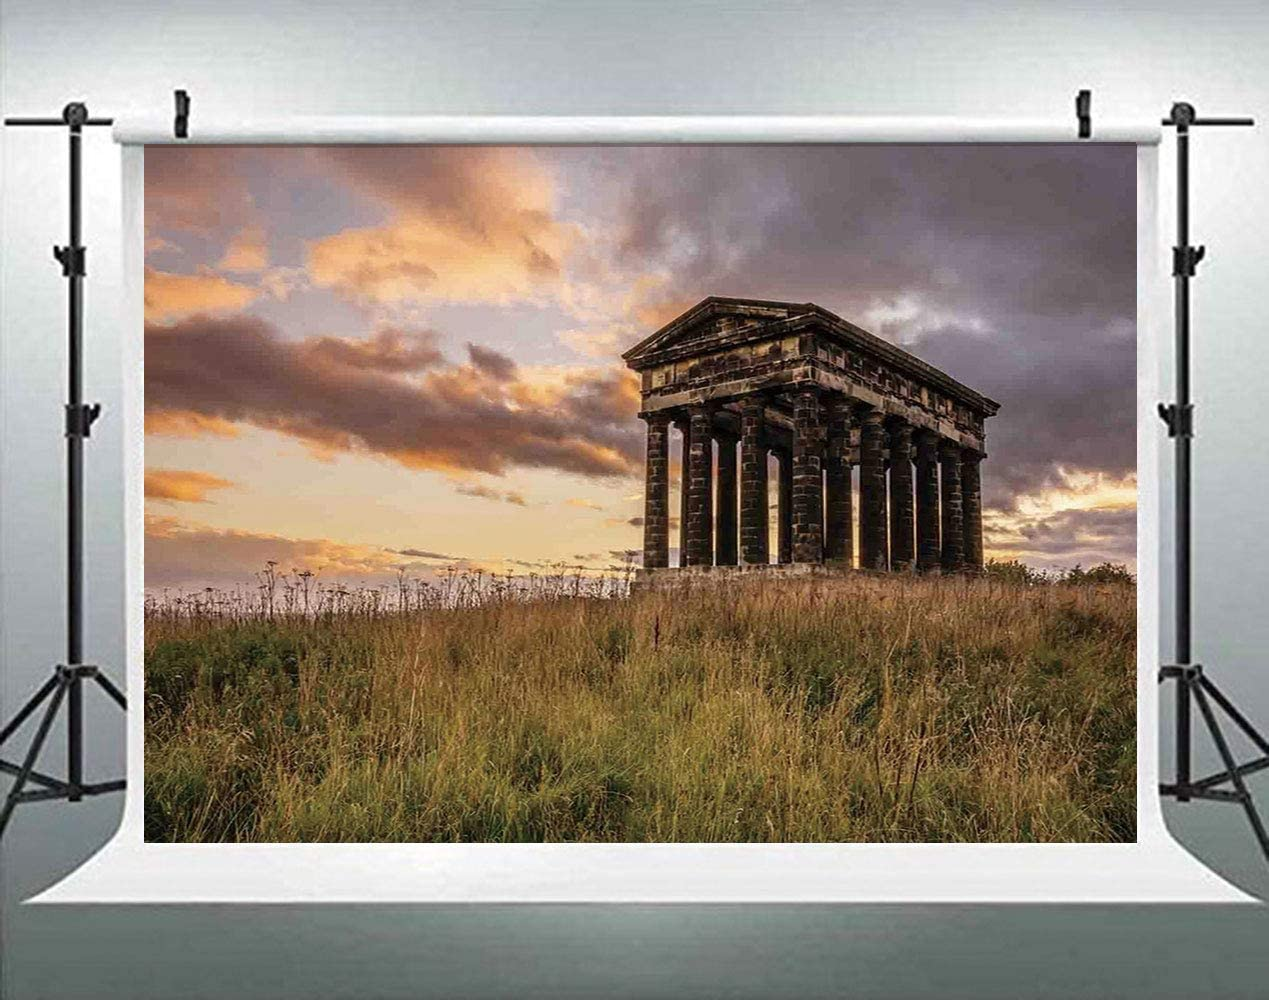 Sky and Lake with Antique Surround by Trees Traditional Backdrop for Photography Photo Background Props Photography AM017735 ALUONI 5x3ft Home Decor